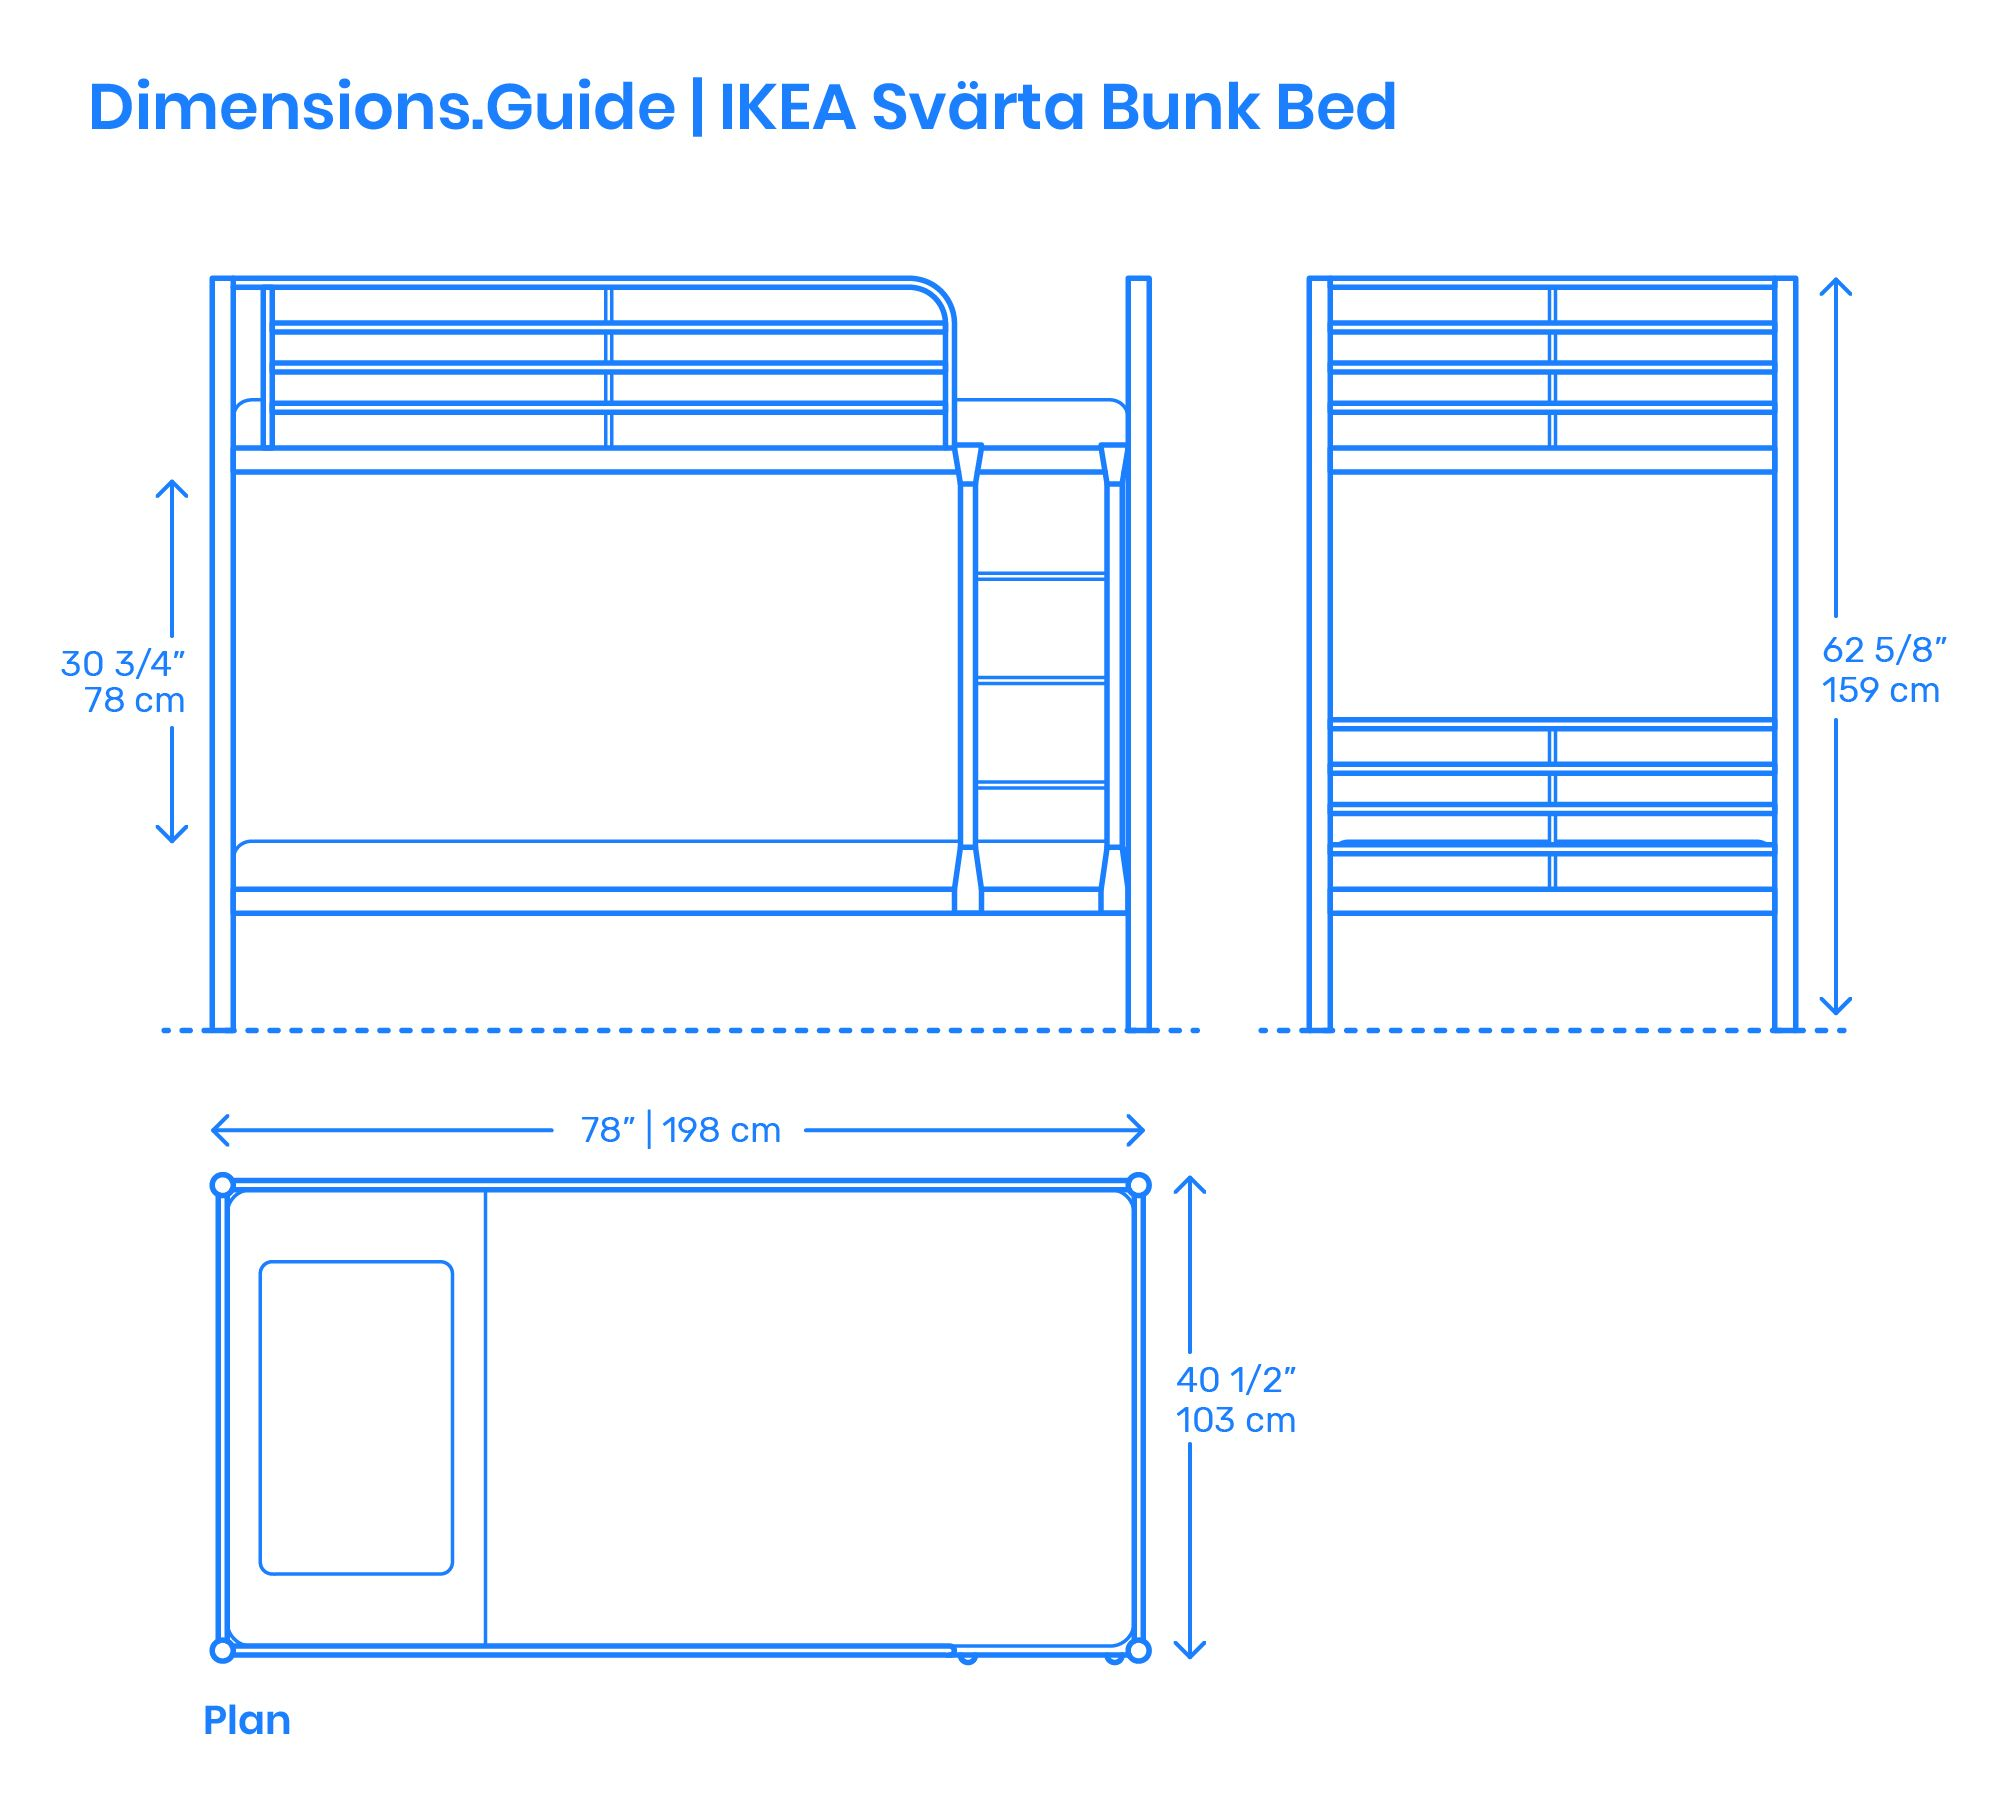 The Ikea Svarta Bunk Bed Is A Streamlined Steel Framed Bunk Bed